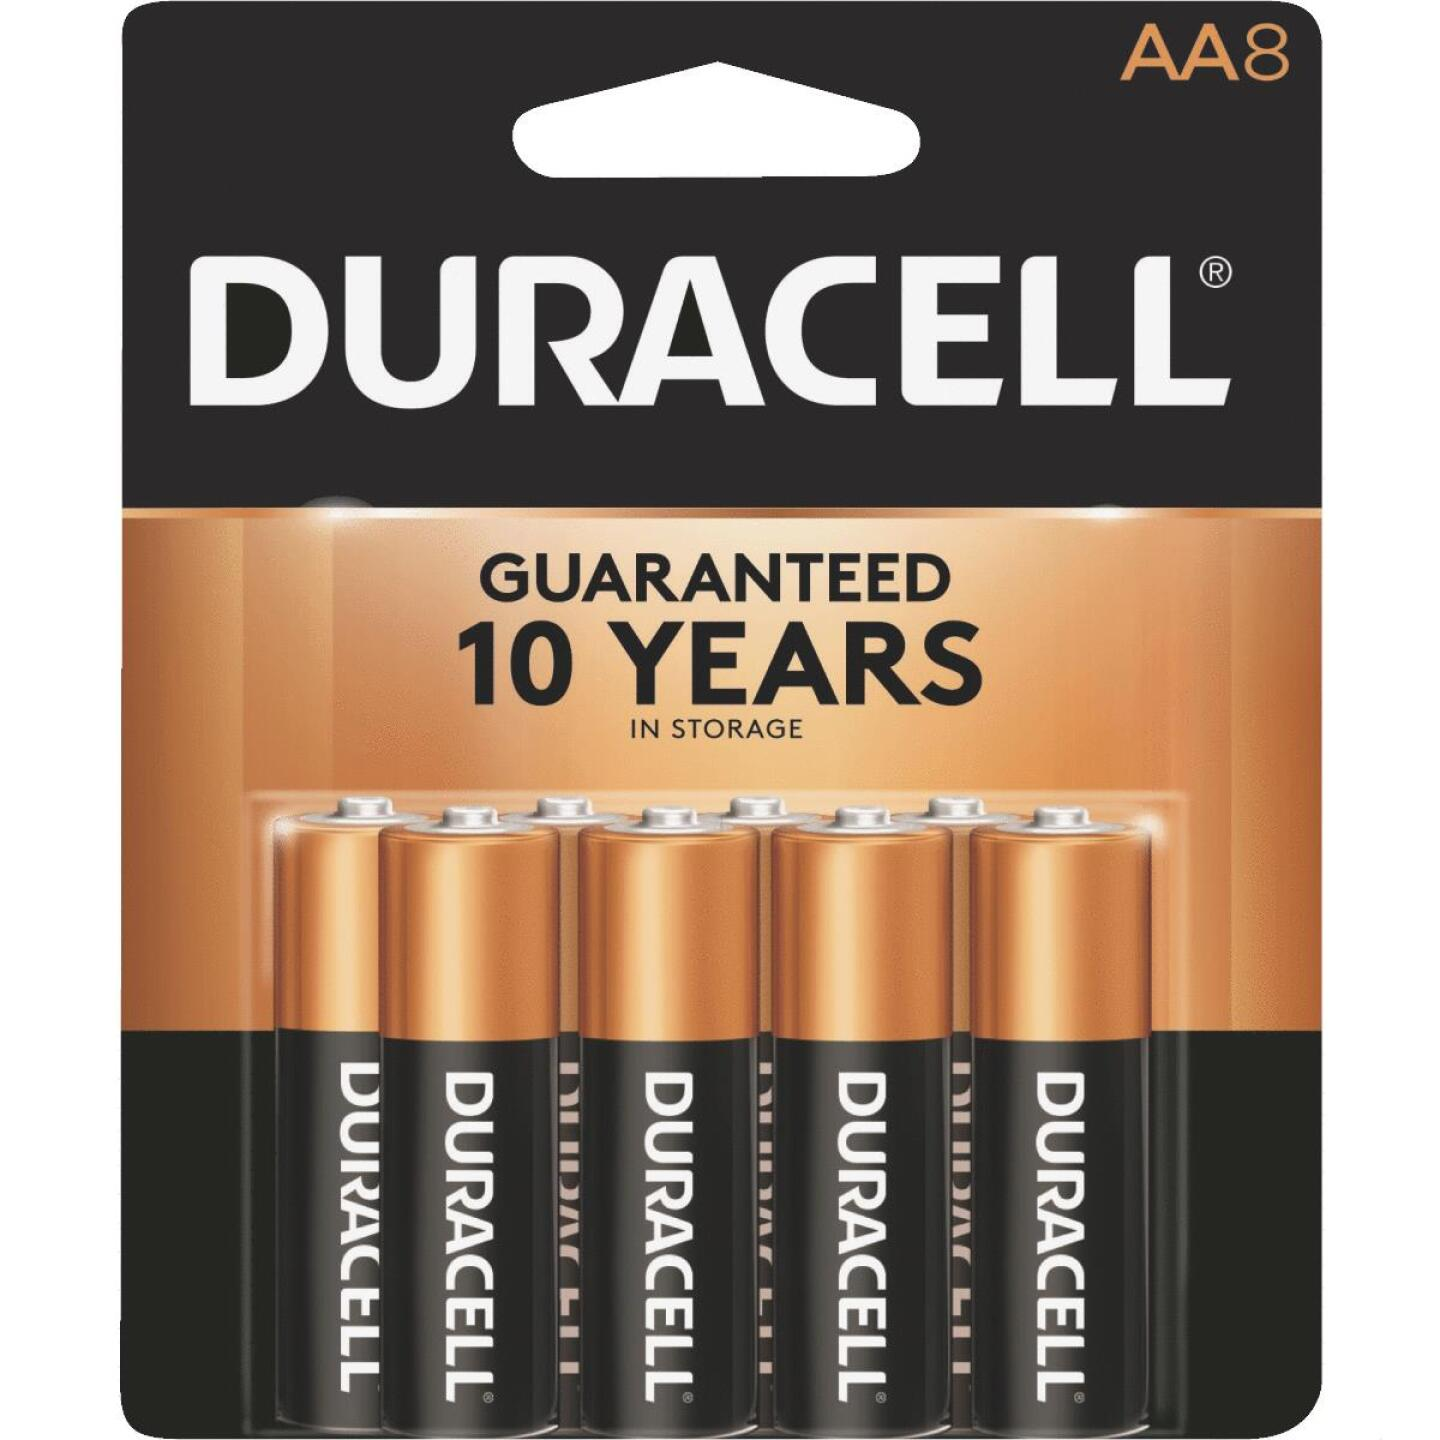 Duracell CopperTop AA Alkaline Battery (8-Pack) Image 1